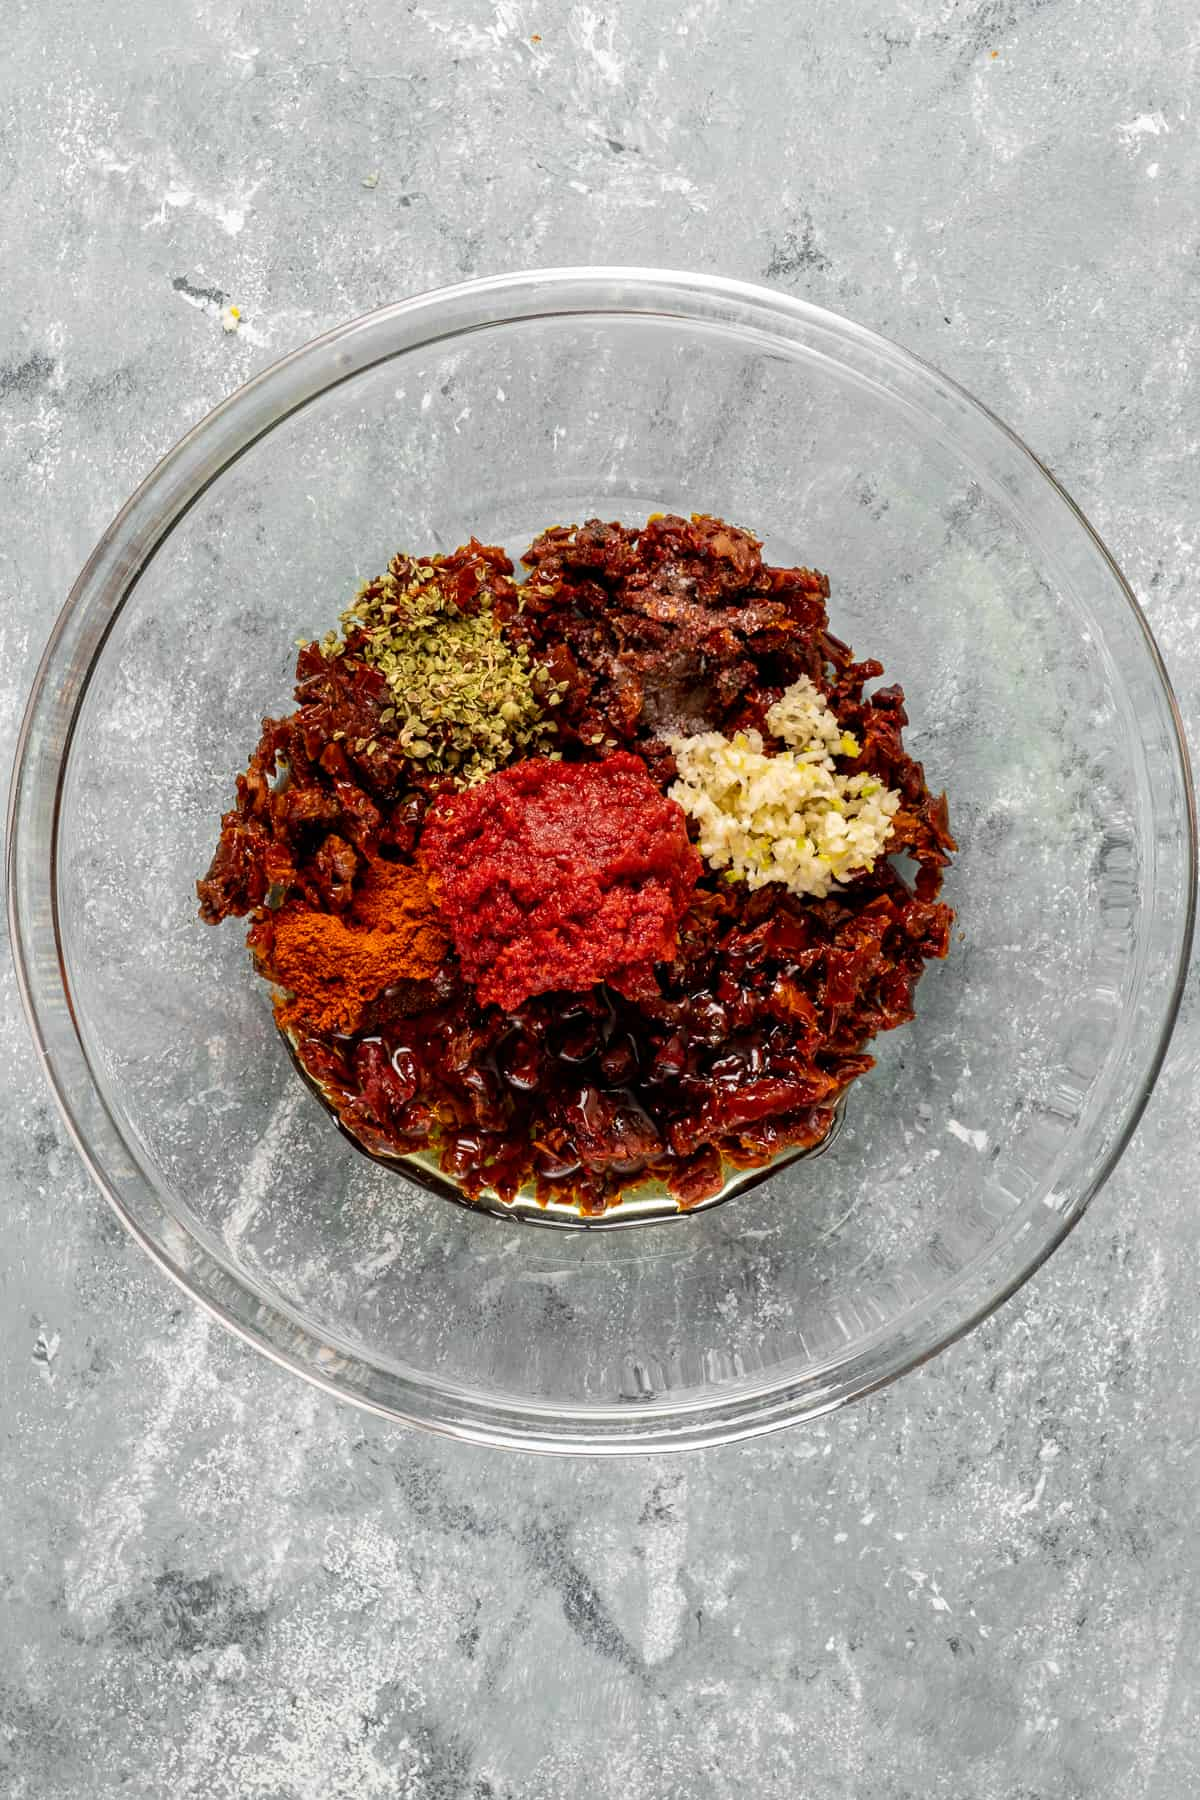 Spices, chopped sun-dried tomatoes, minced garlic and tomato paste in a glass mixing bowl.